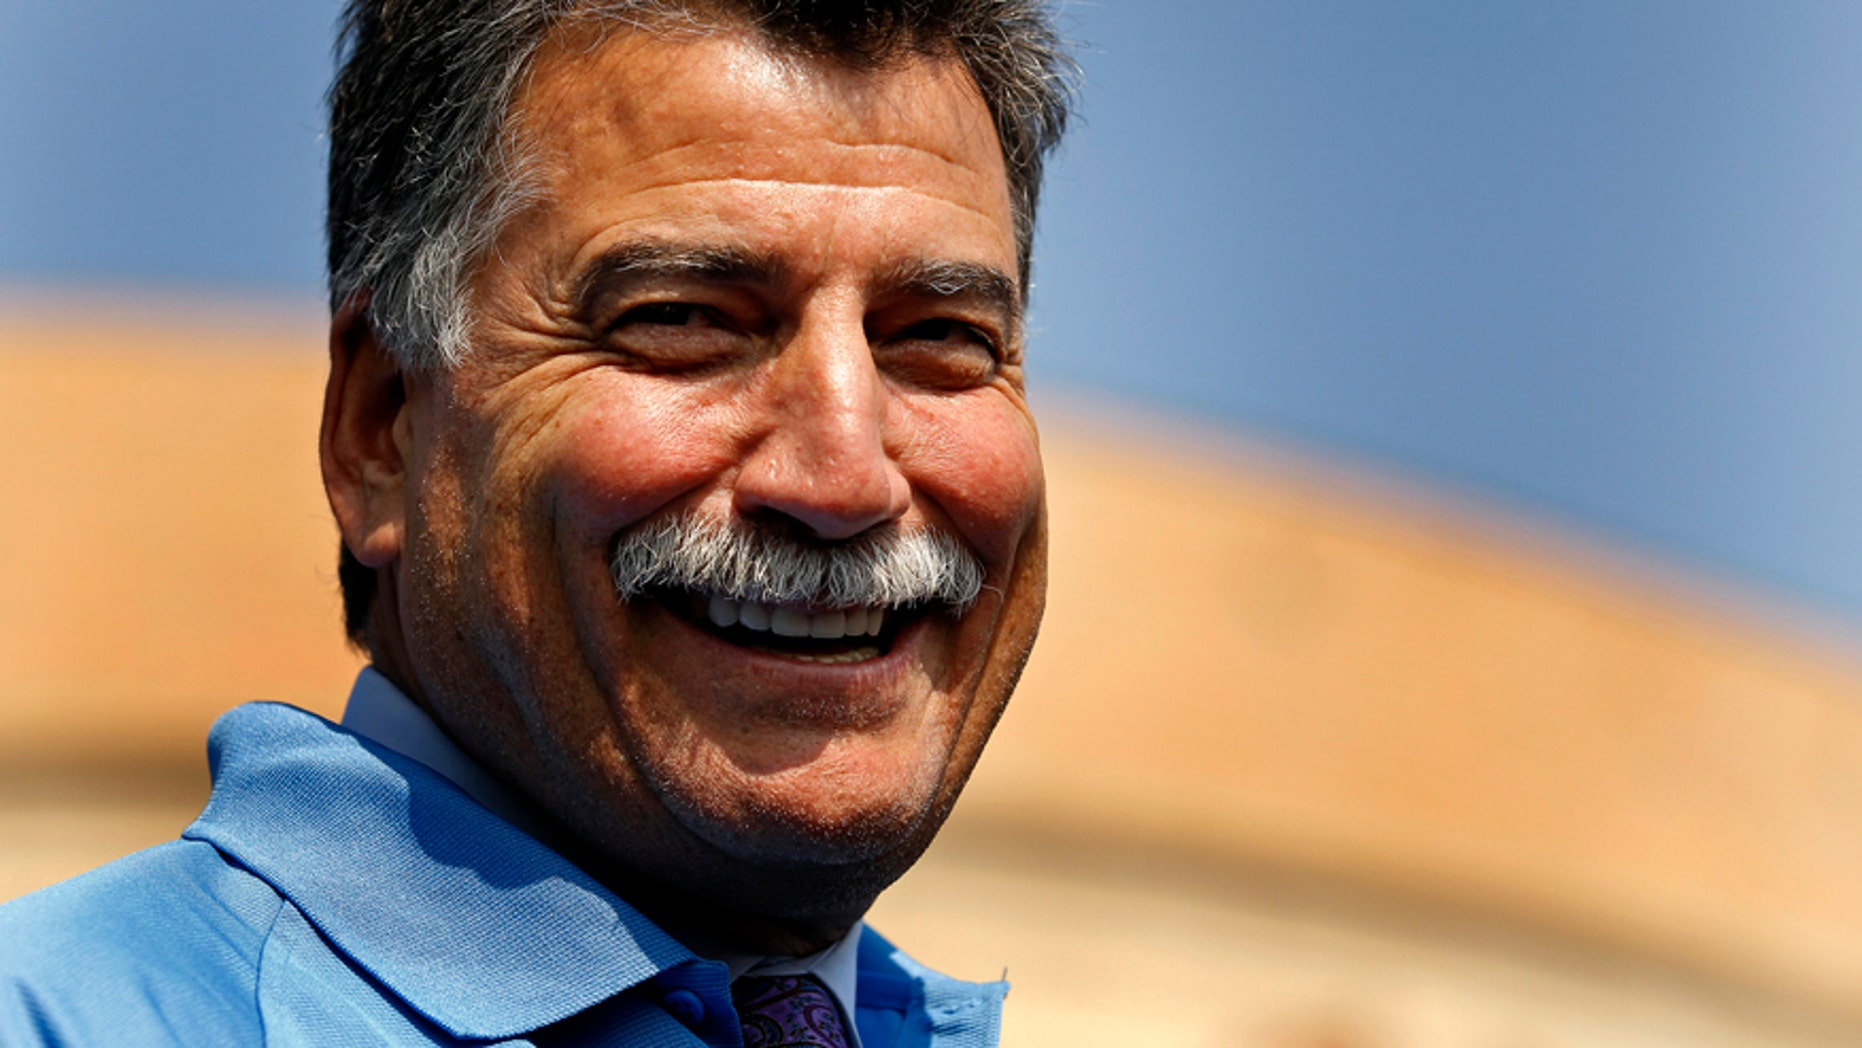 Former New York Mets All-Star Keith Hernandez smiles prior to having his moustache shaved for charity in front of CitiField in New York, September 27, 2012.